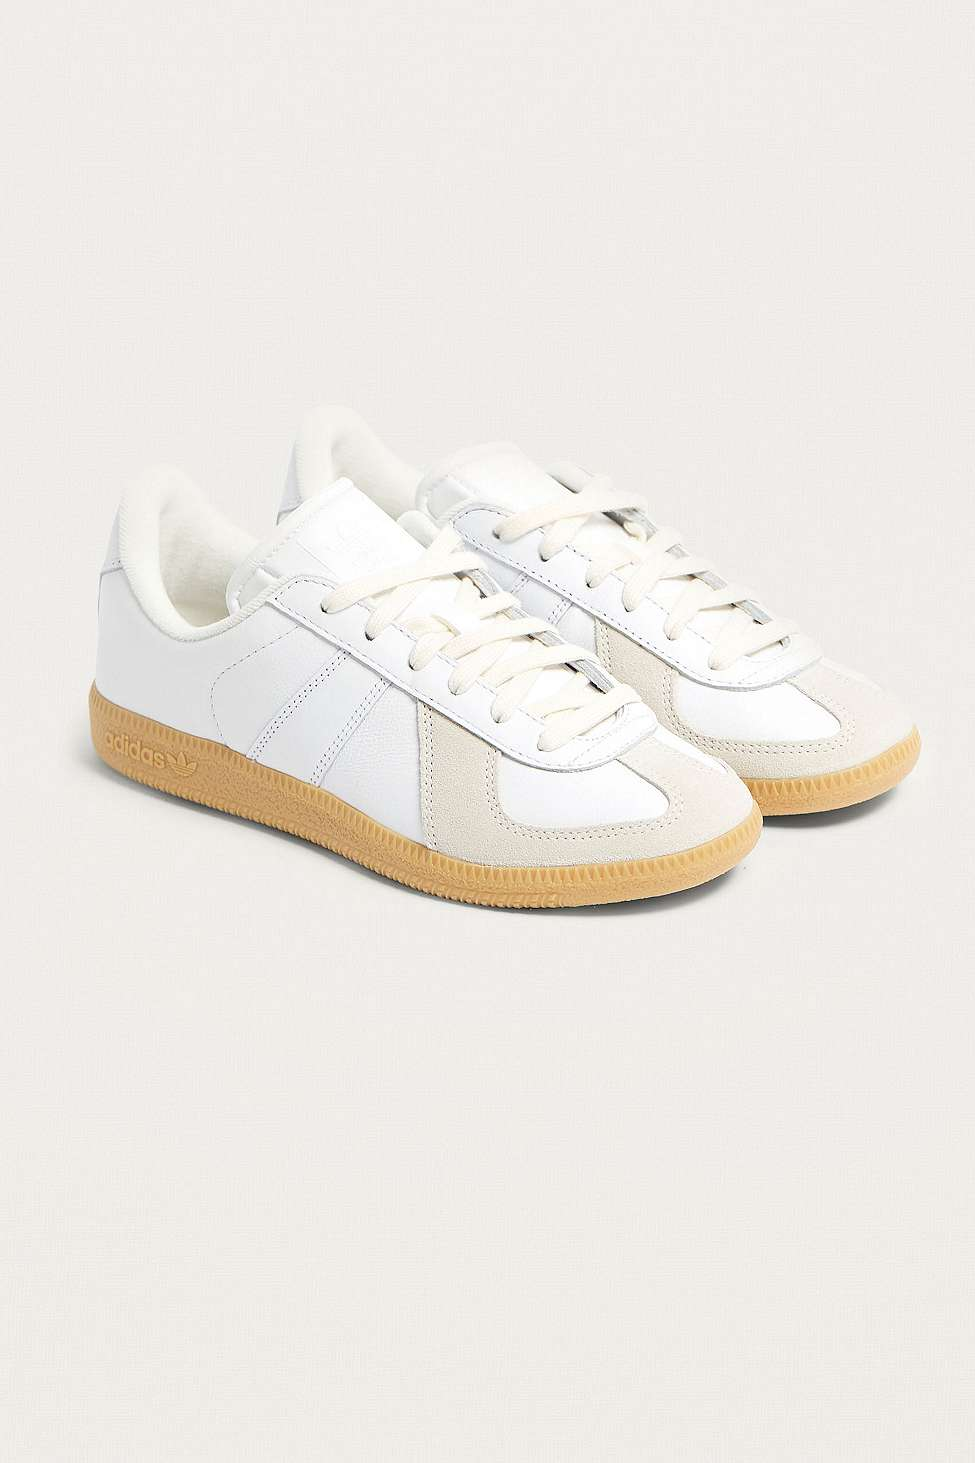 BW Army White Trainers by Adidas — Thread